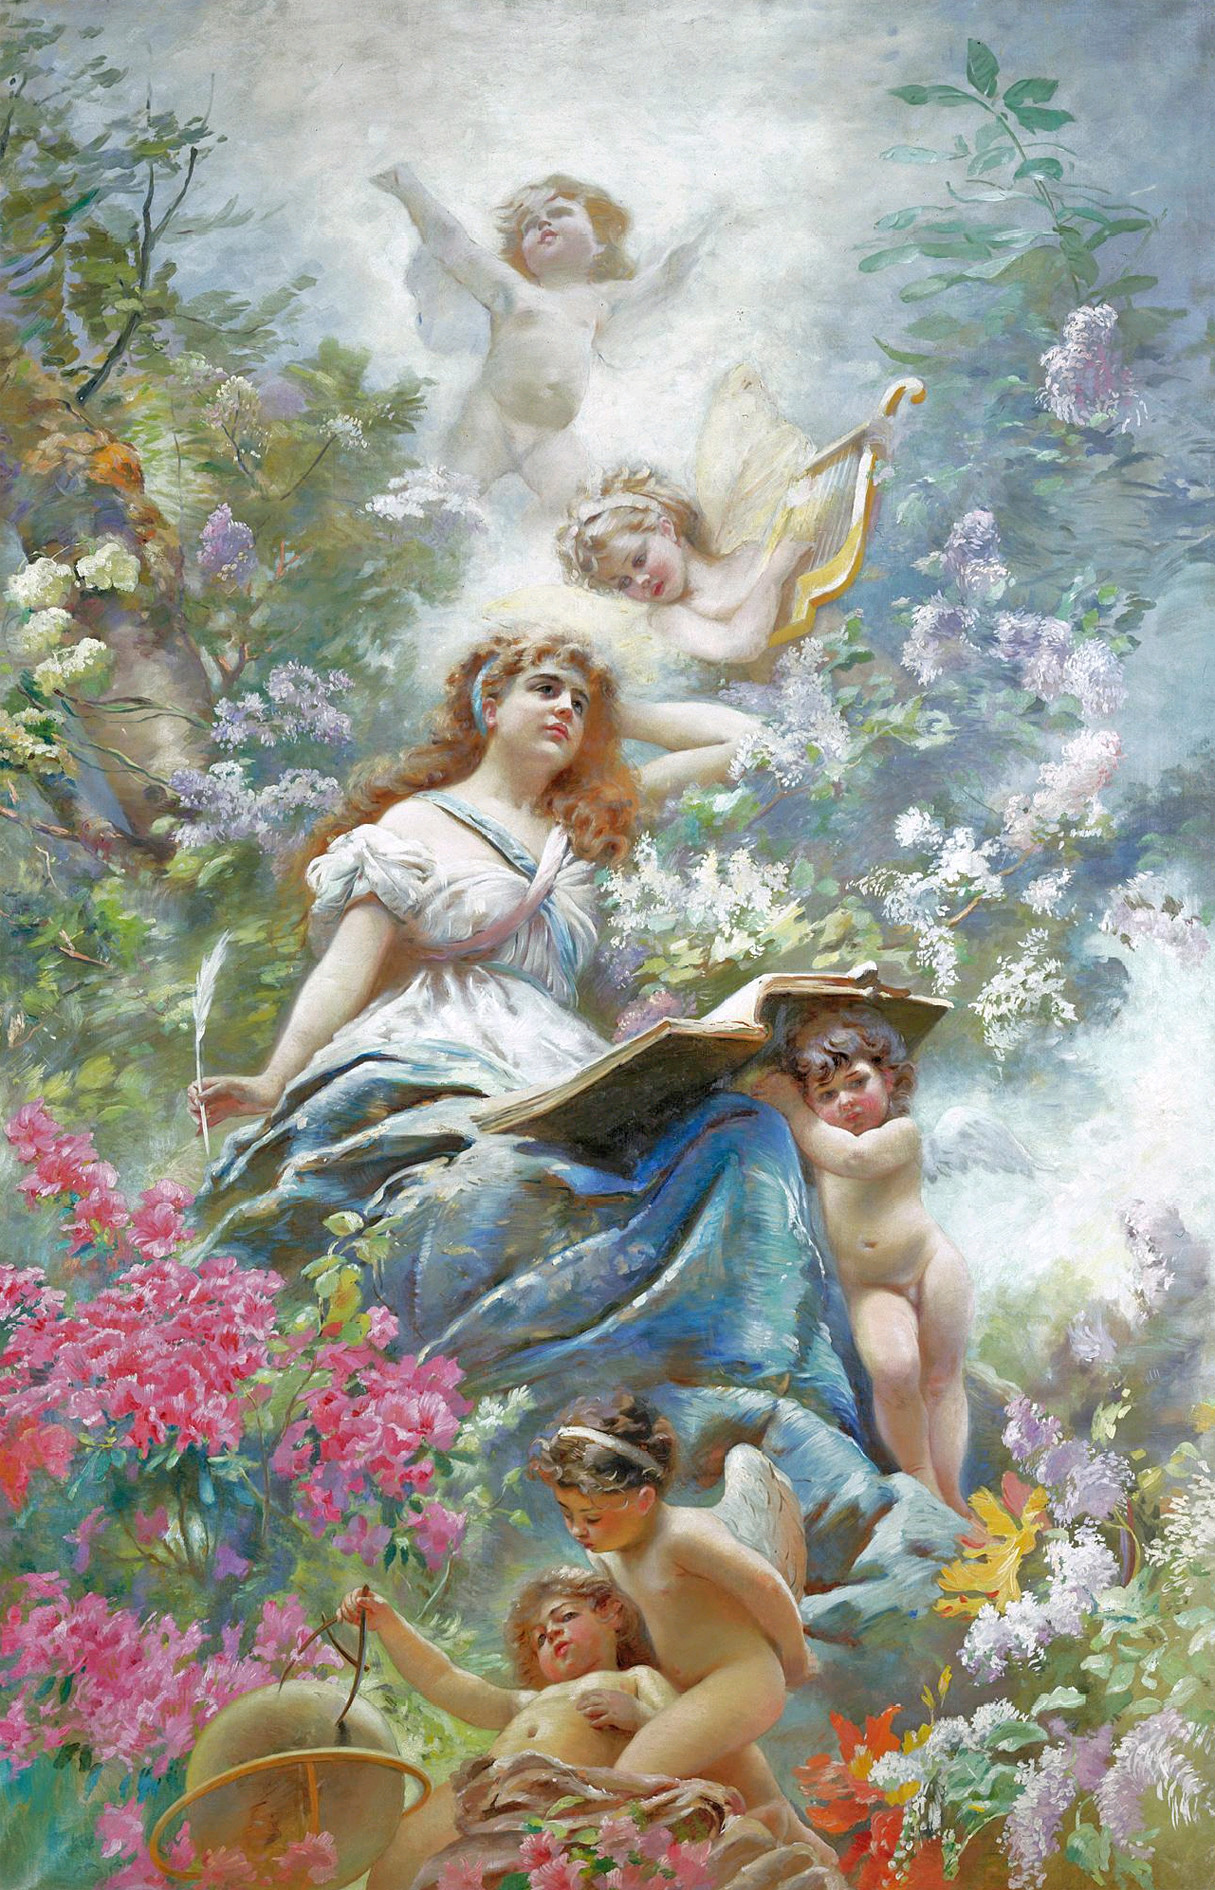 http://upload.wikimedia.org/wikipedia/commons/4/48/The_Muse_of_Poesie_by_Konstantin_Makovsky.jpg